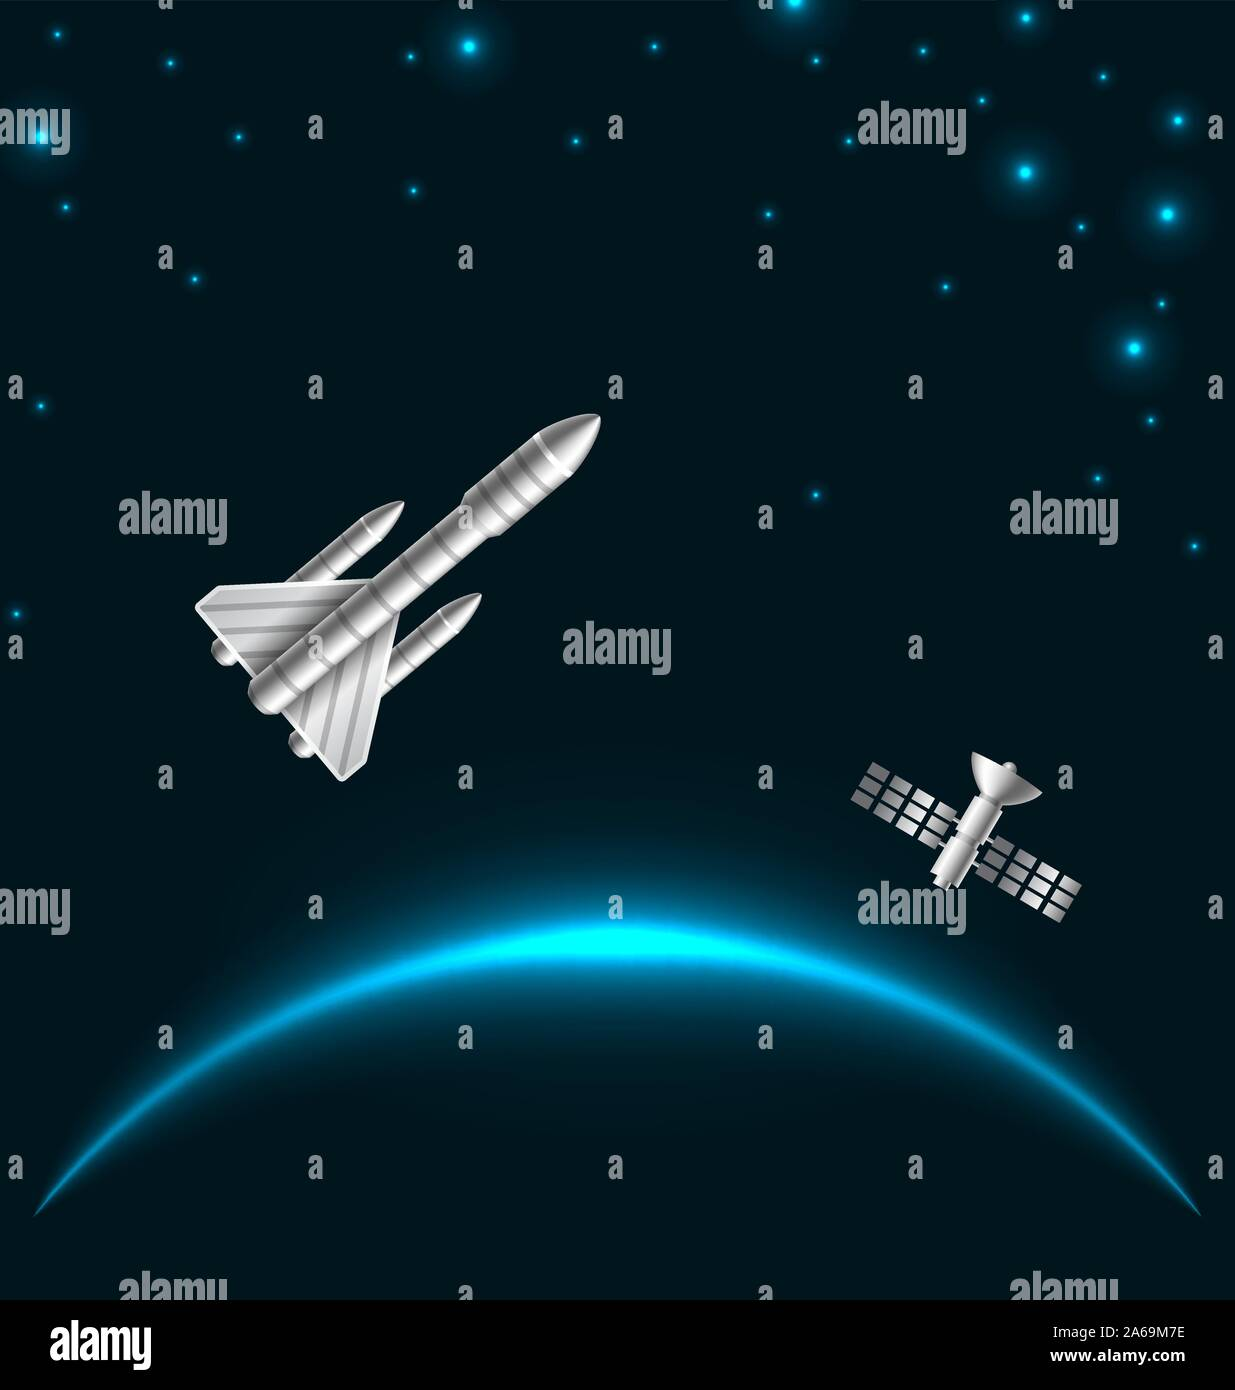 Space Rocket Launch, Cosmos Starry Background with Space Shuttle - Illustration Vector Stock Vector